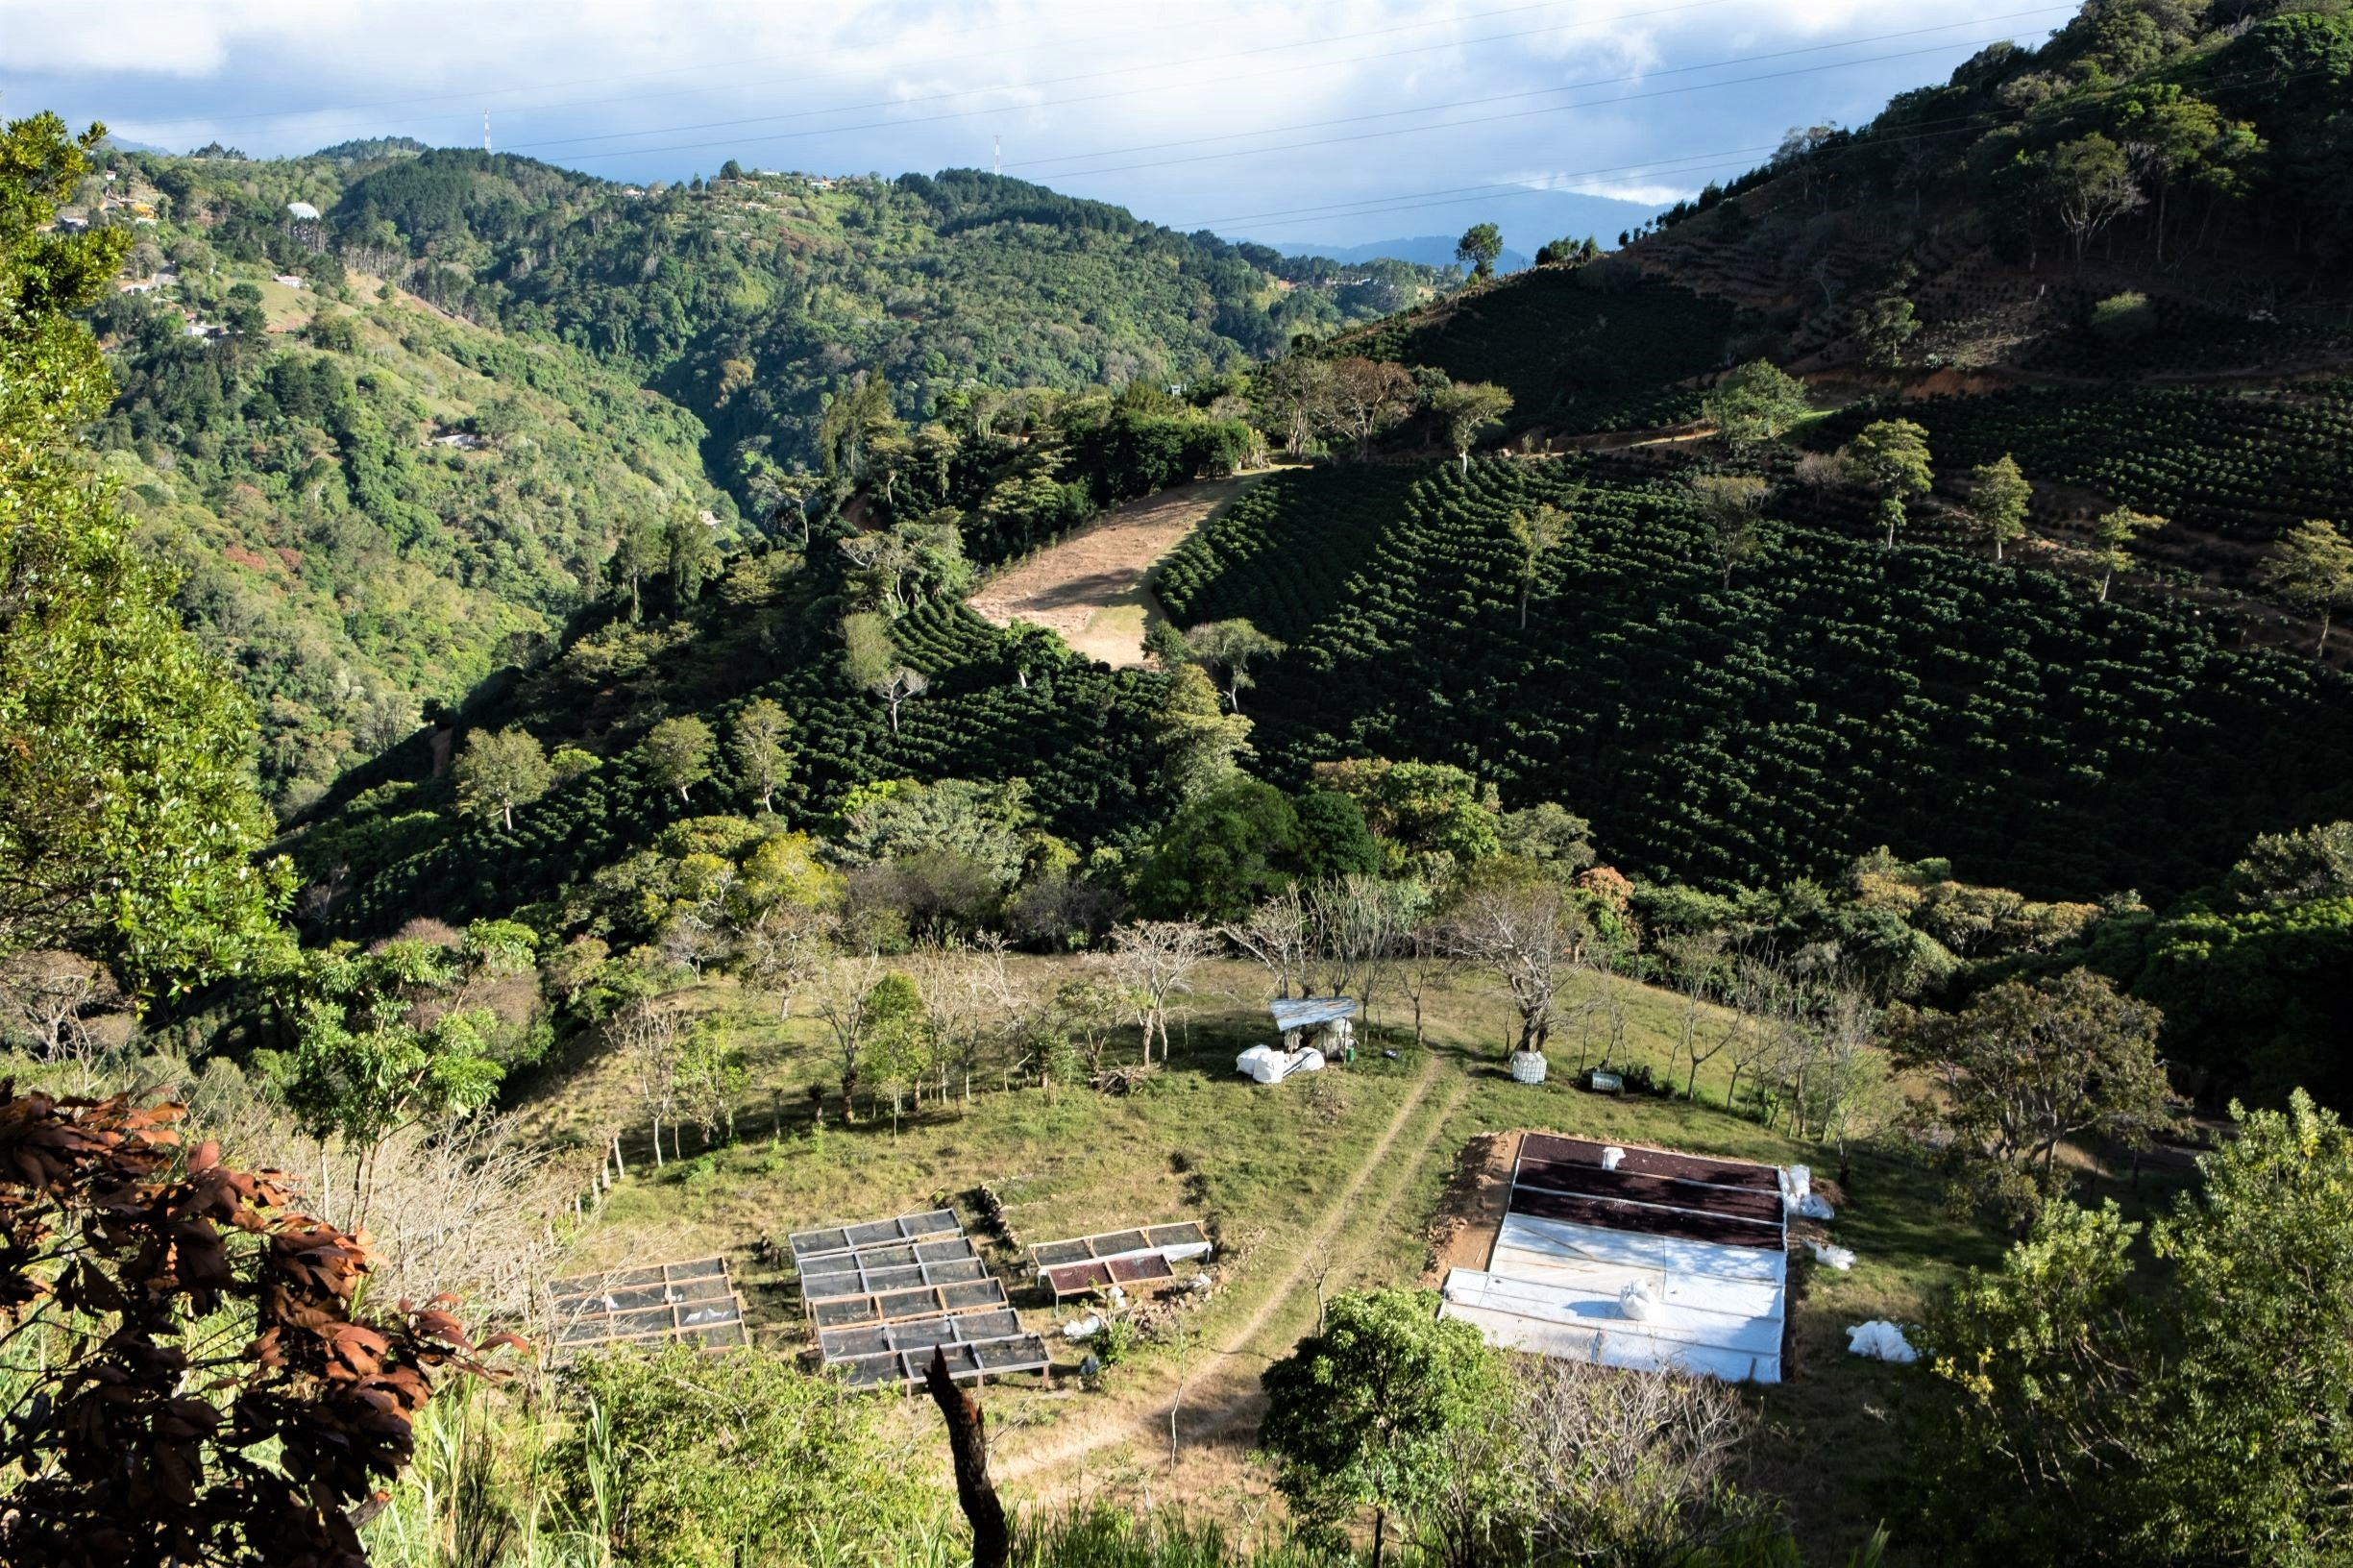 Aerial view of Finca Cedral Alto coffee farm in Costa Rica